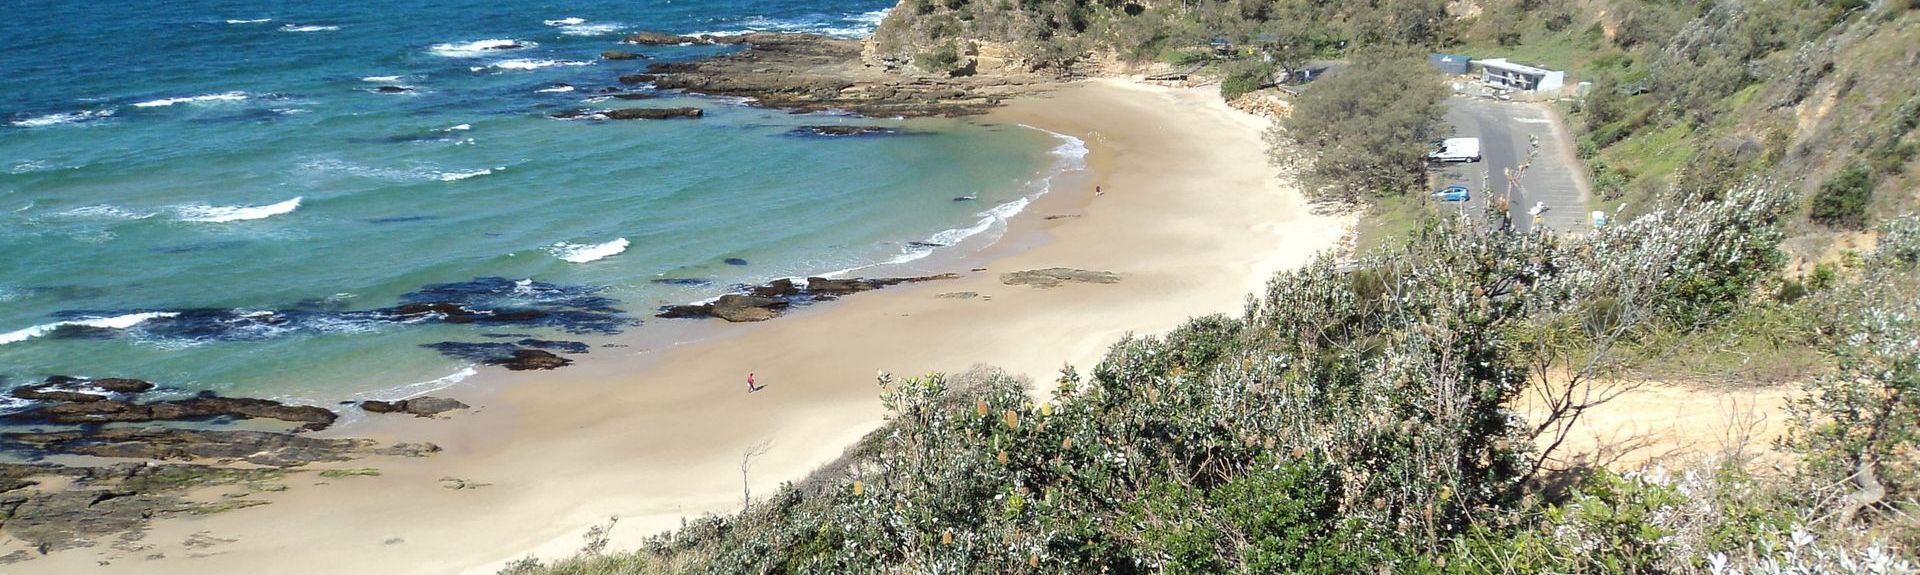 Valla Beach NSW, Australia